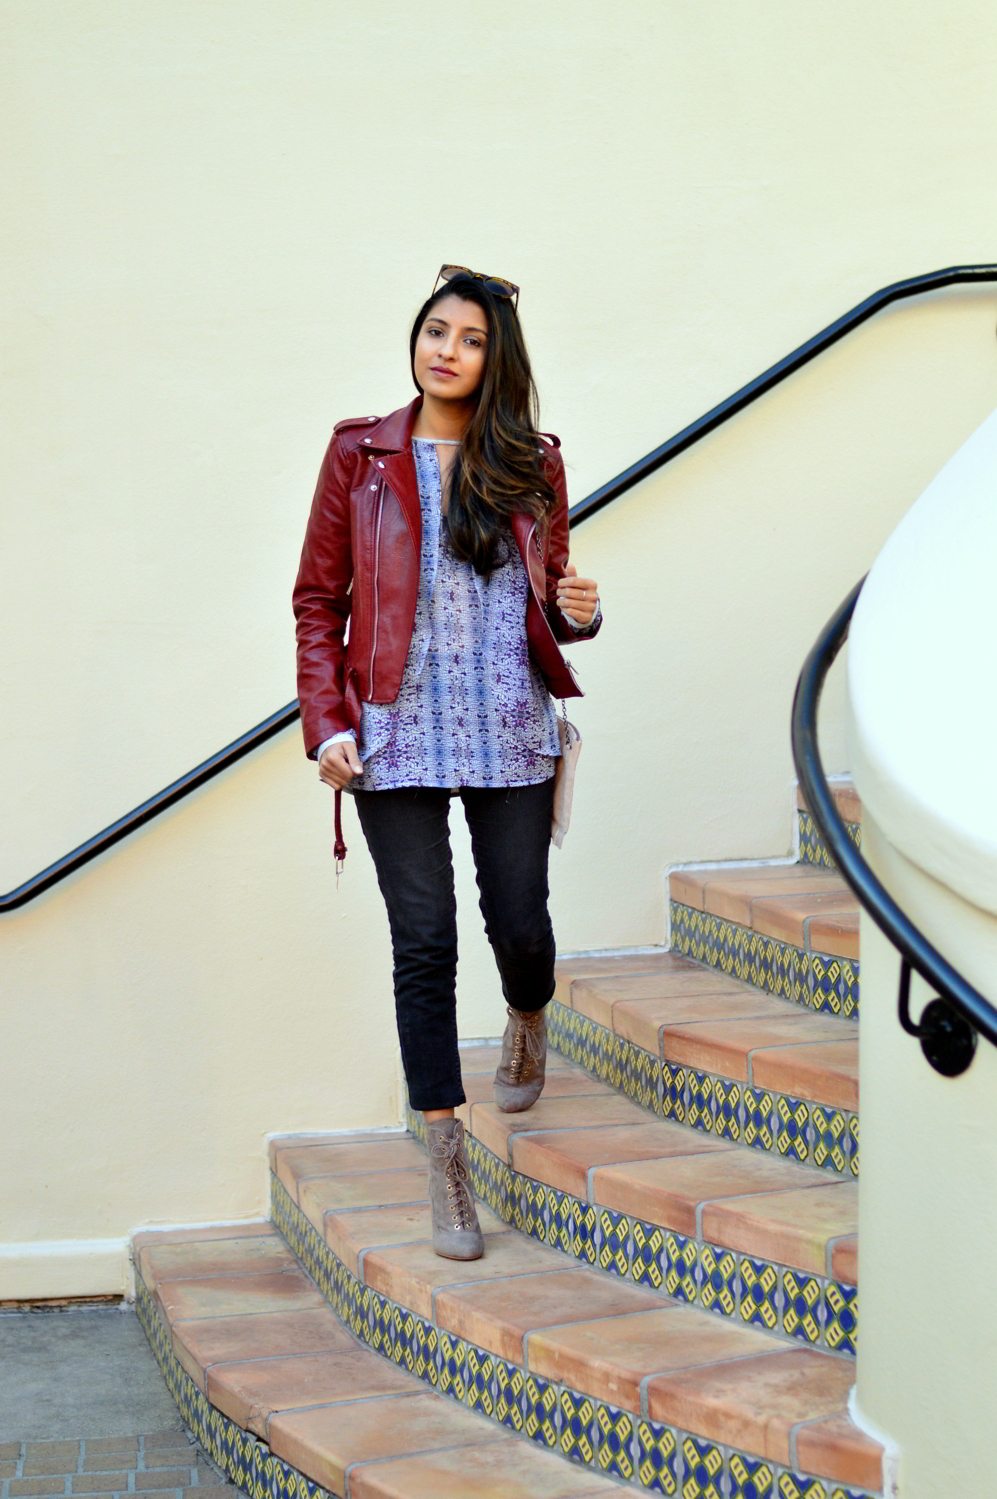 burgundy-leather-jacket-laceup-ankle-boots-casual-layers-winter-style-fall-blogger-outfit 7